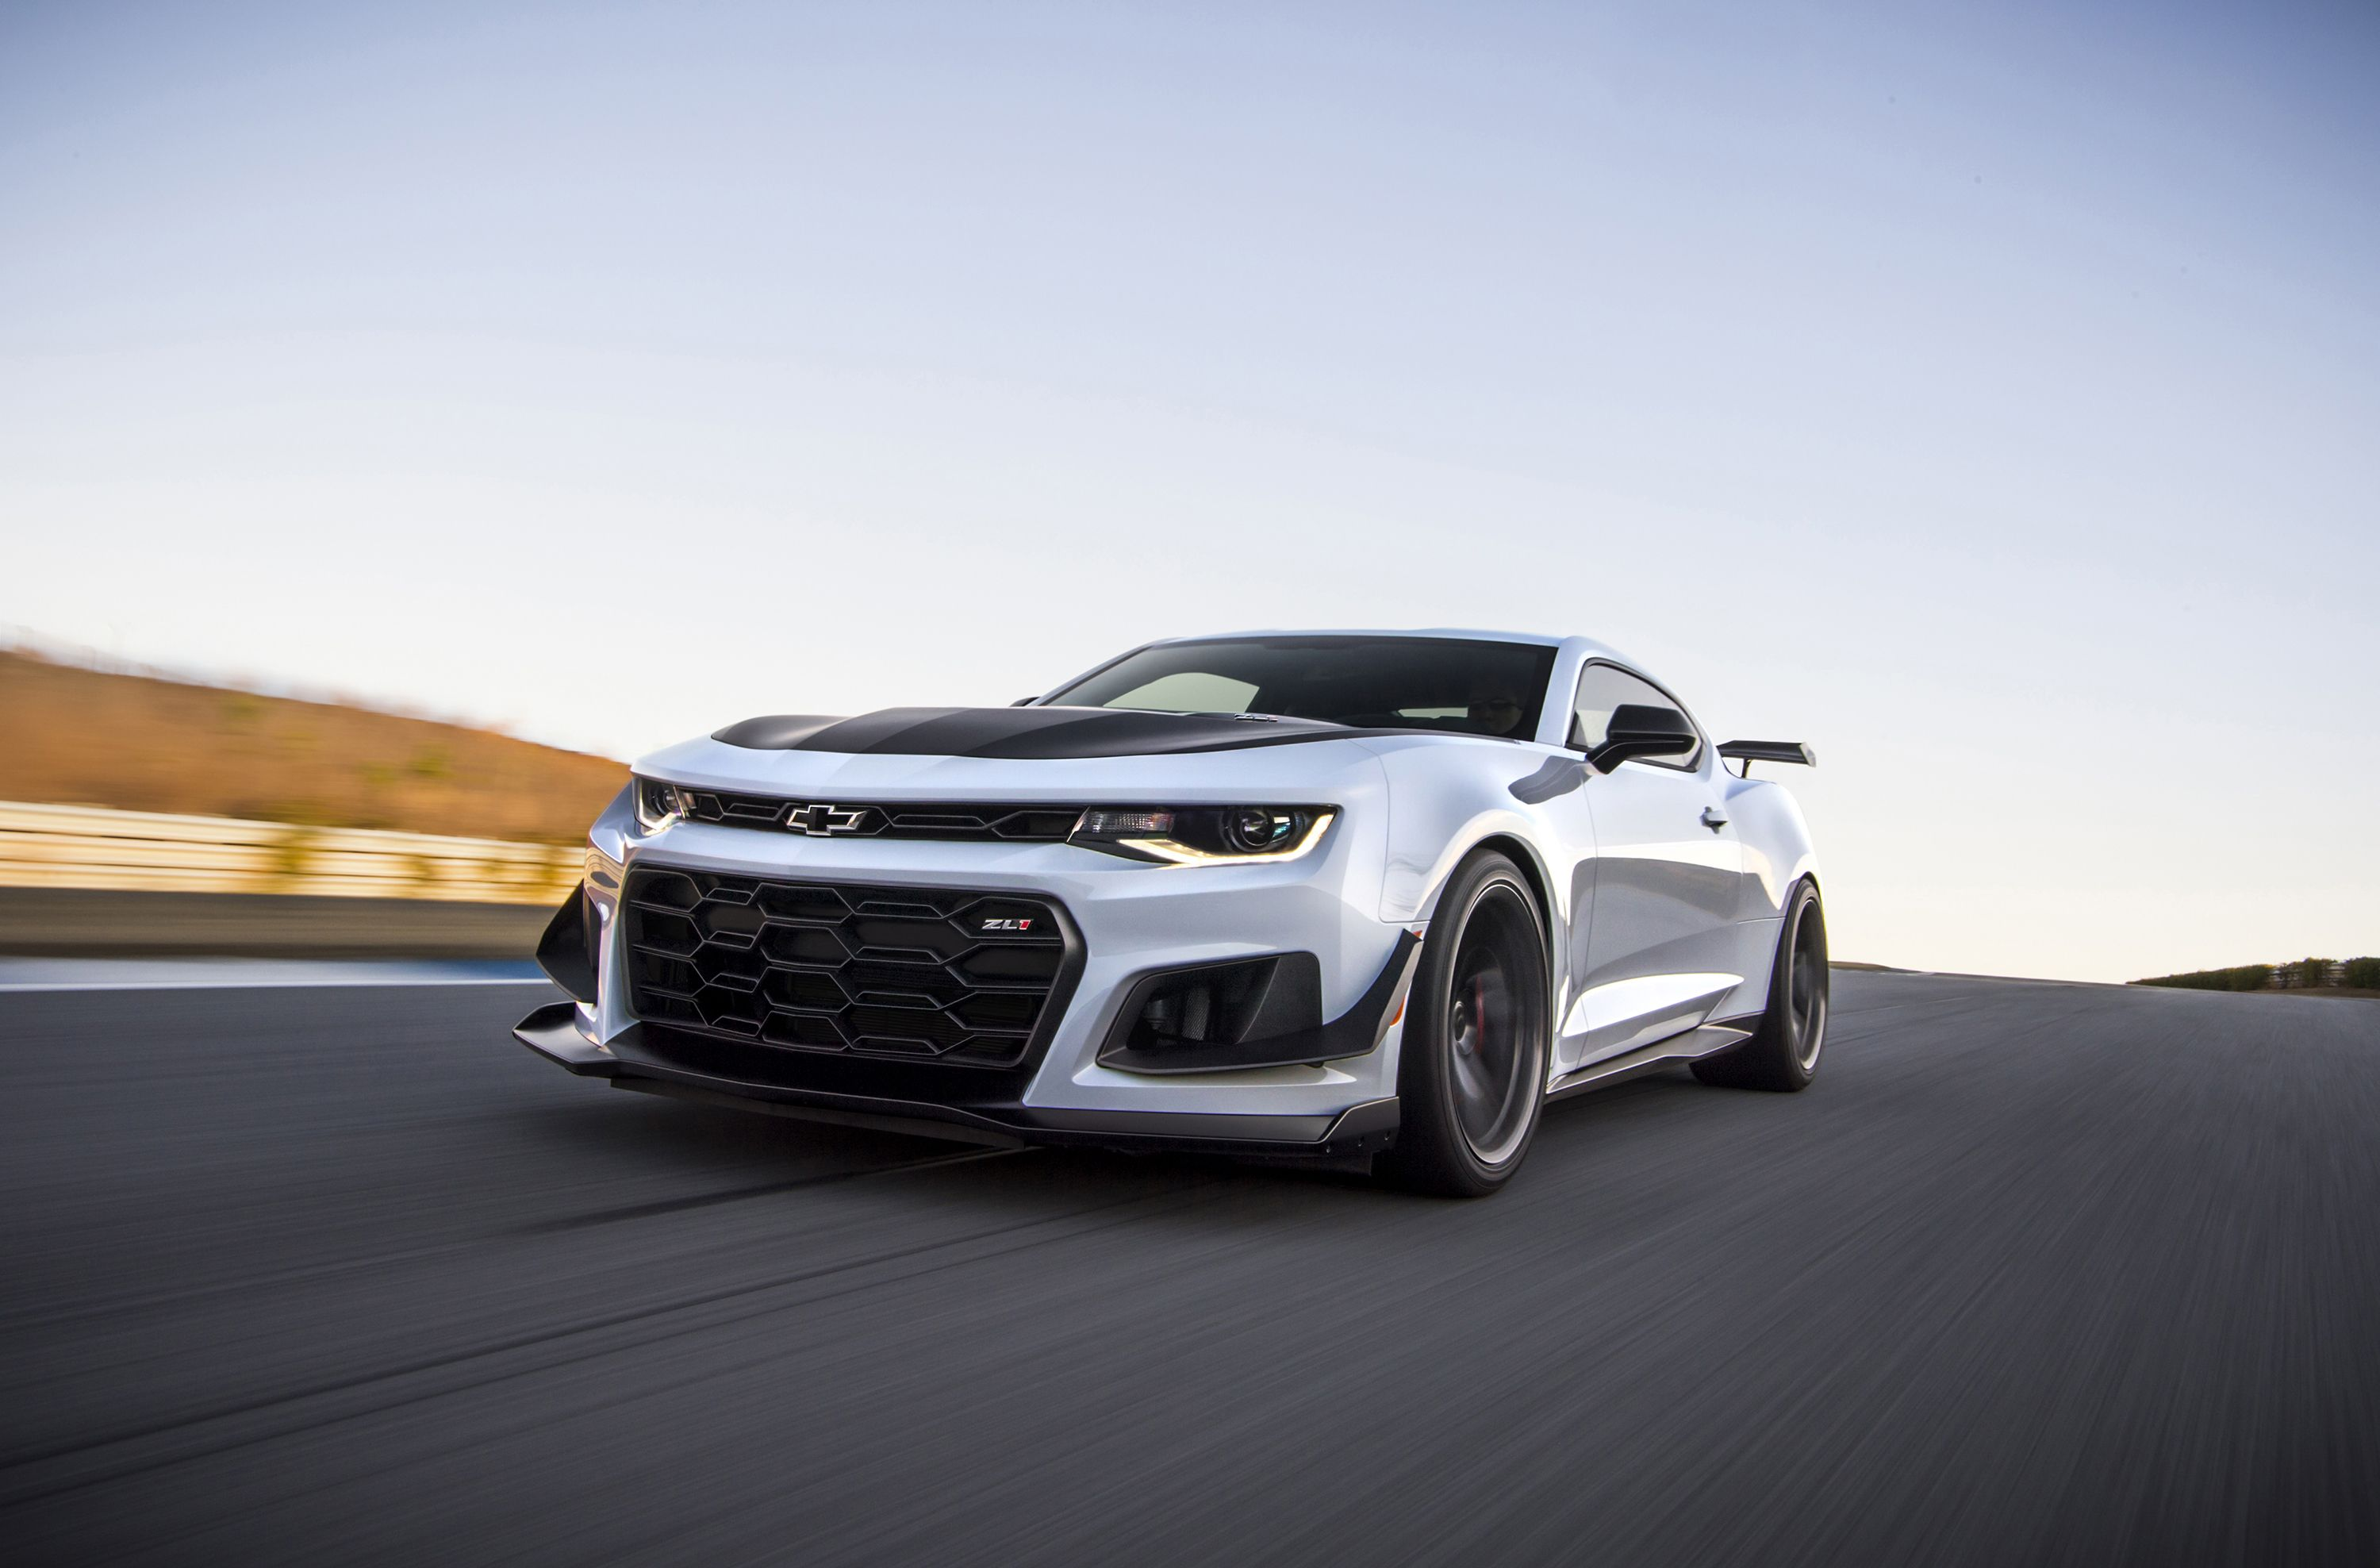 Chevrolet Will Give You $3000 Off a New Camaro If You Own a Mustang